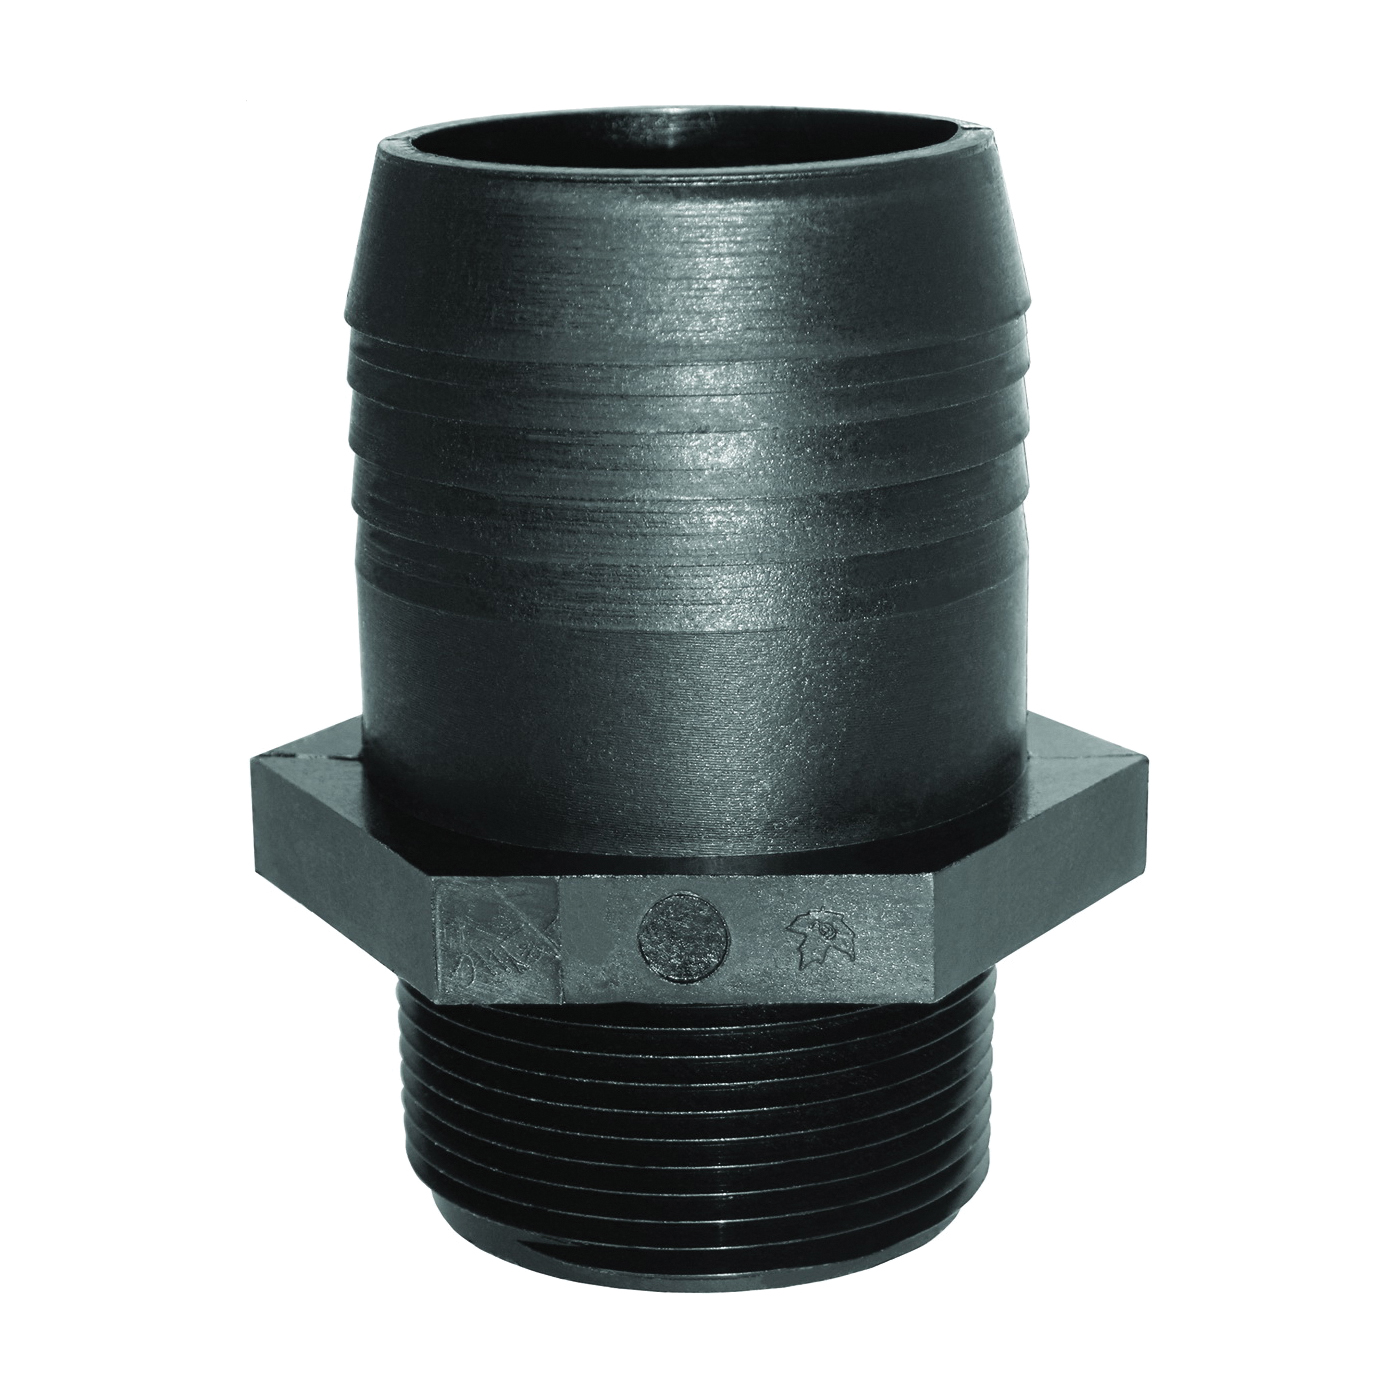 Picture of GREEN LEAF A1212P Adapter Fitting, 1/2 in, MPT x Hose Barb, Polypropylene